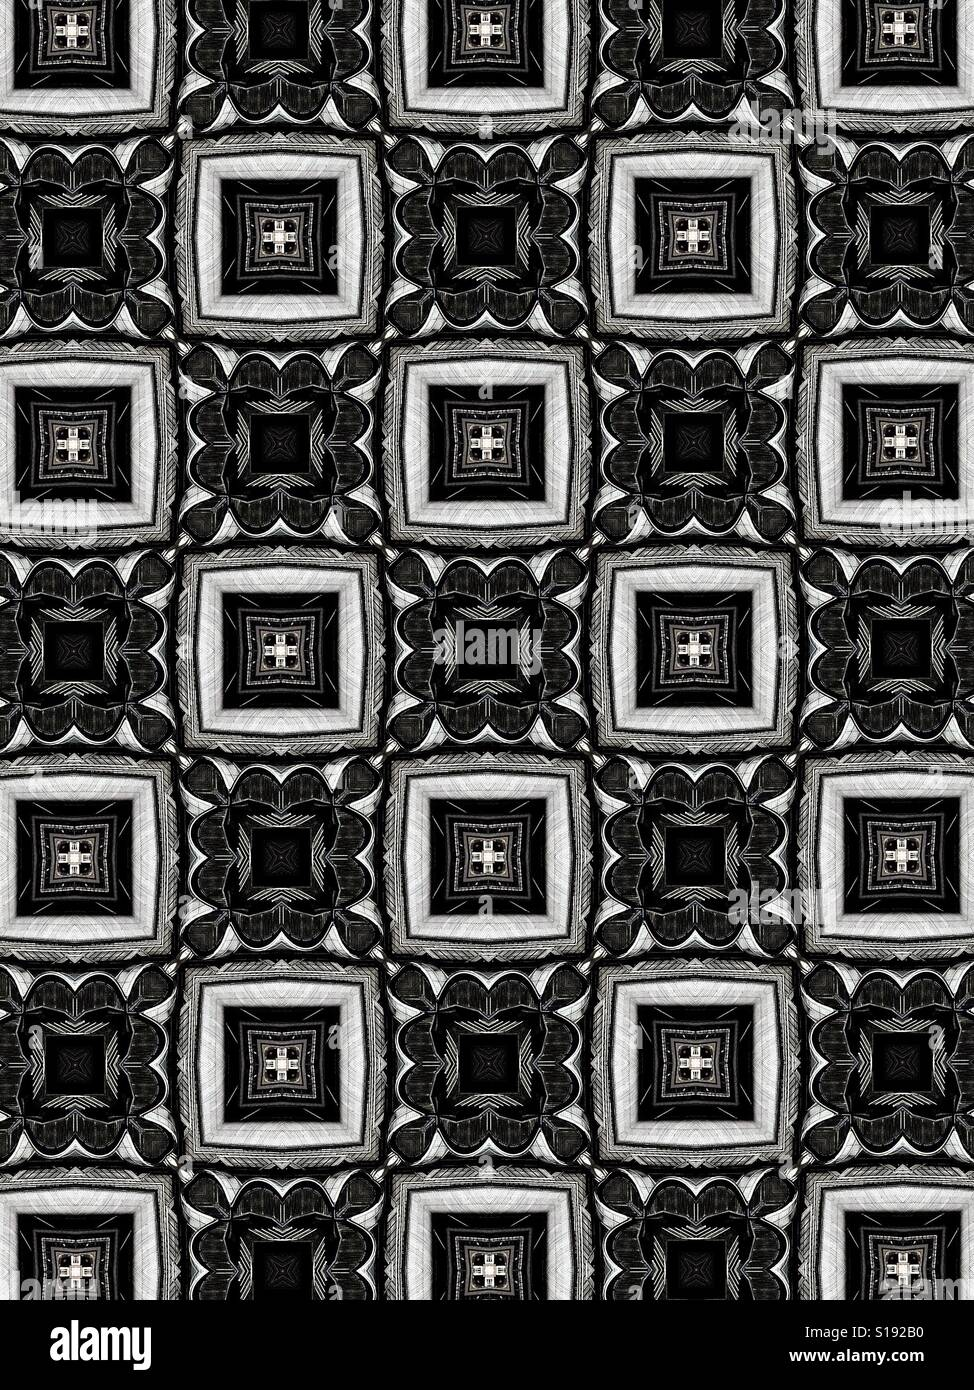 An abstract black and white design of interconnected squares - Stock Image